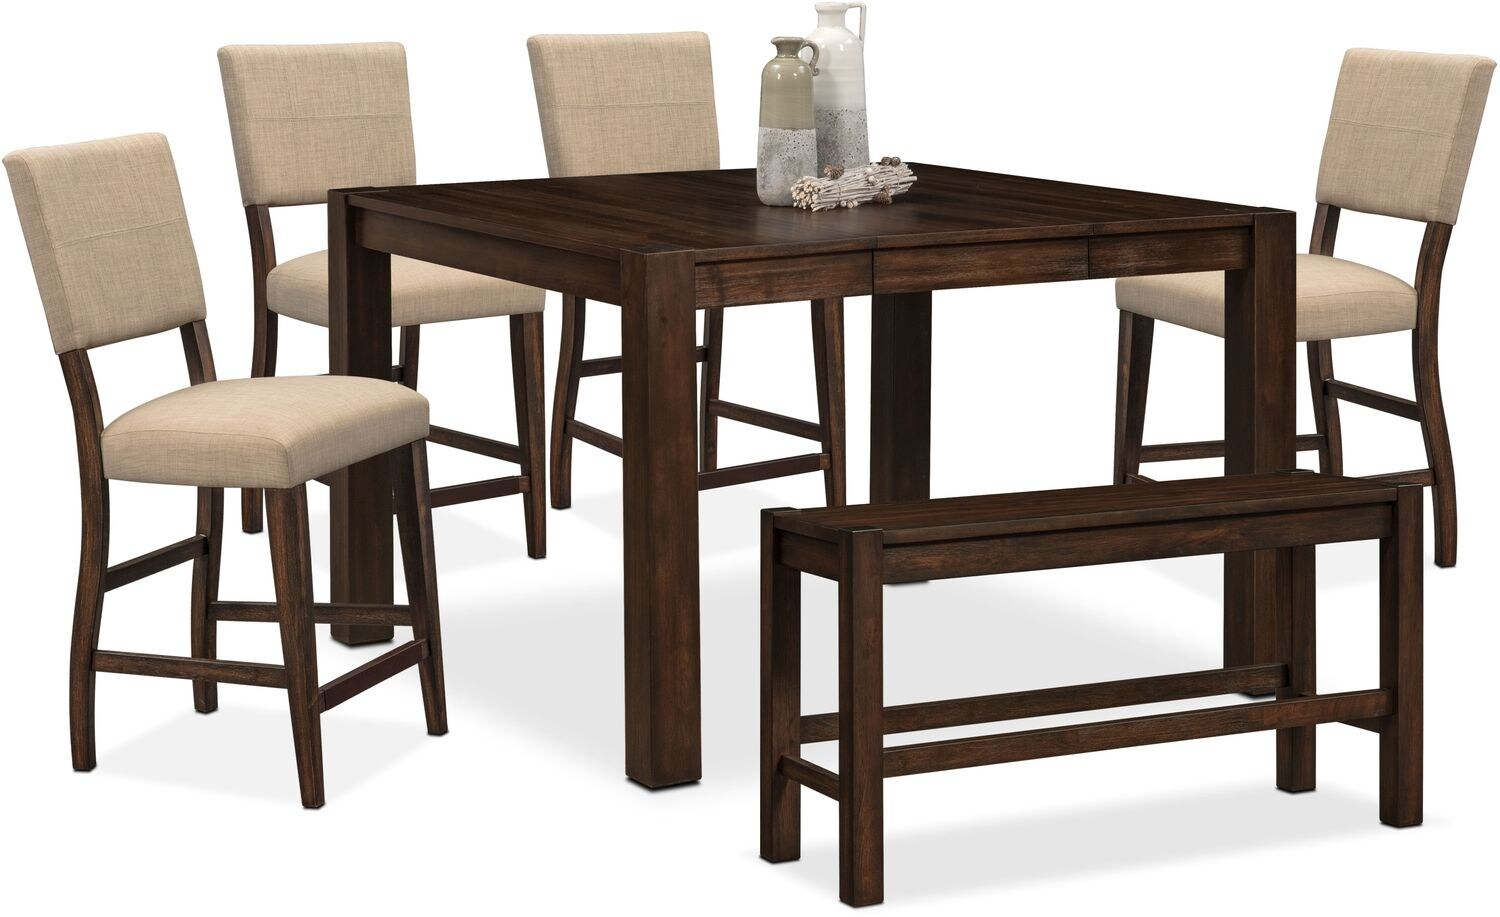 Tribeca Counter Height Table, 4 Upholstered Side Chairs And Bench   Tobacco